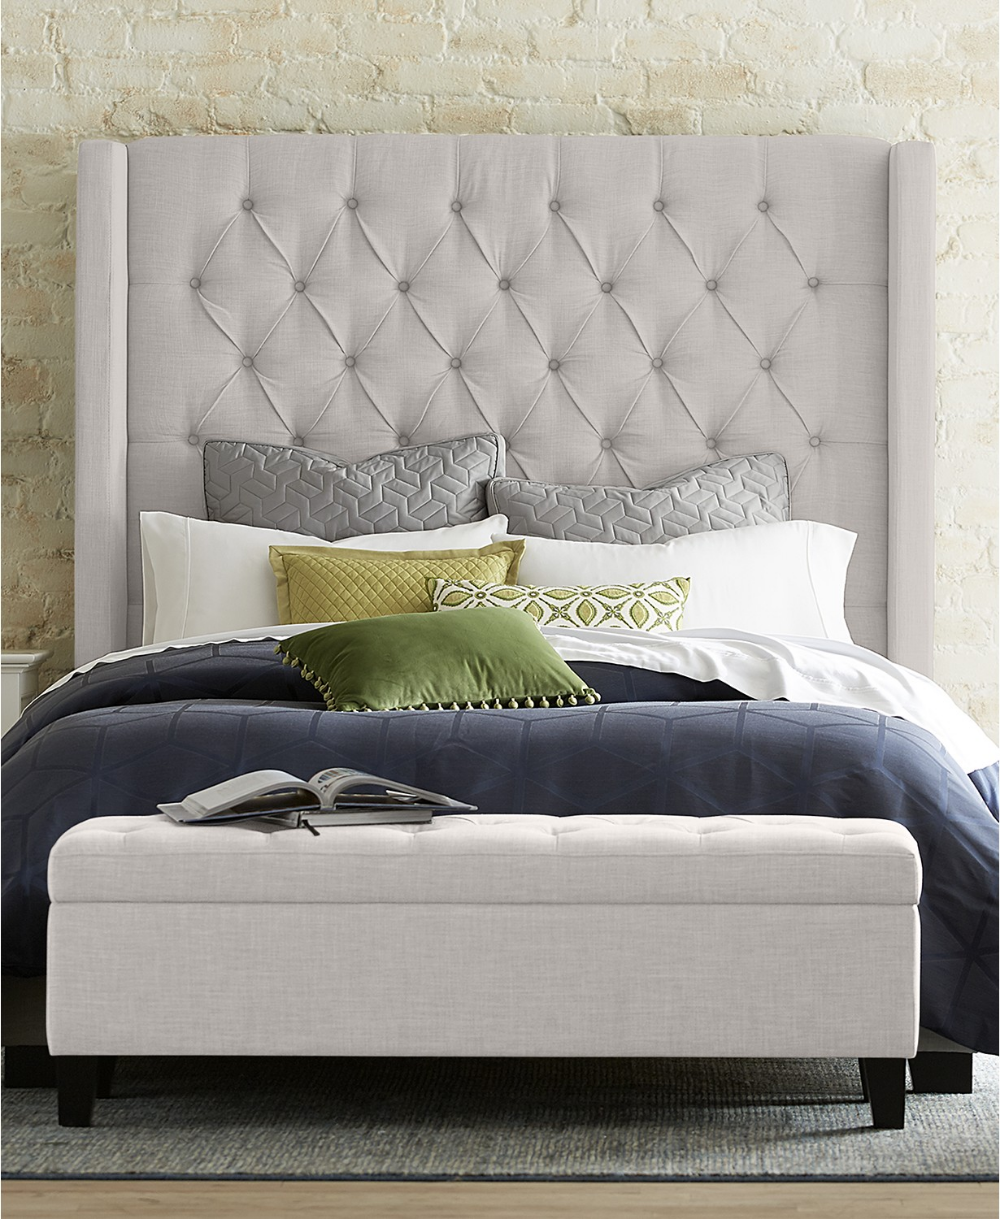 Furniture Closeout! Monroe Upholstered Storage Bench, Created for